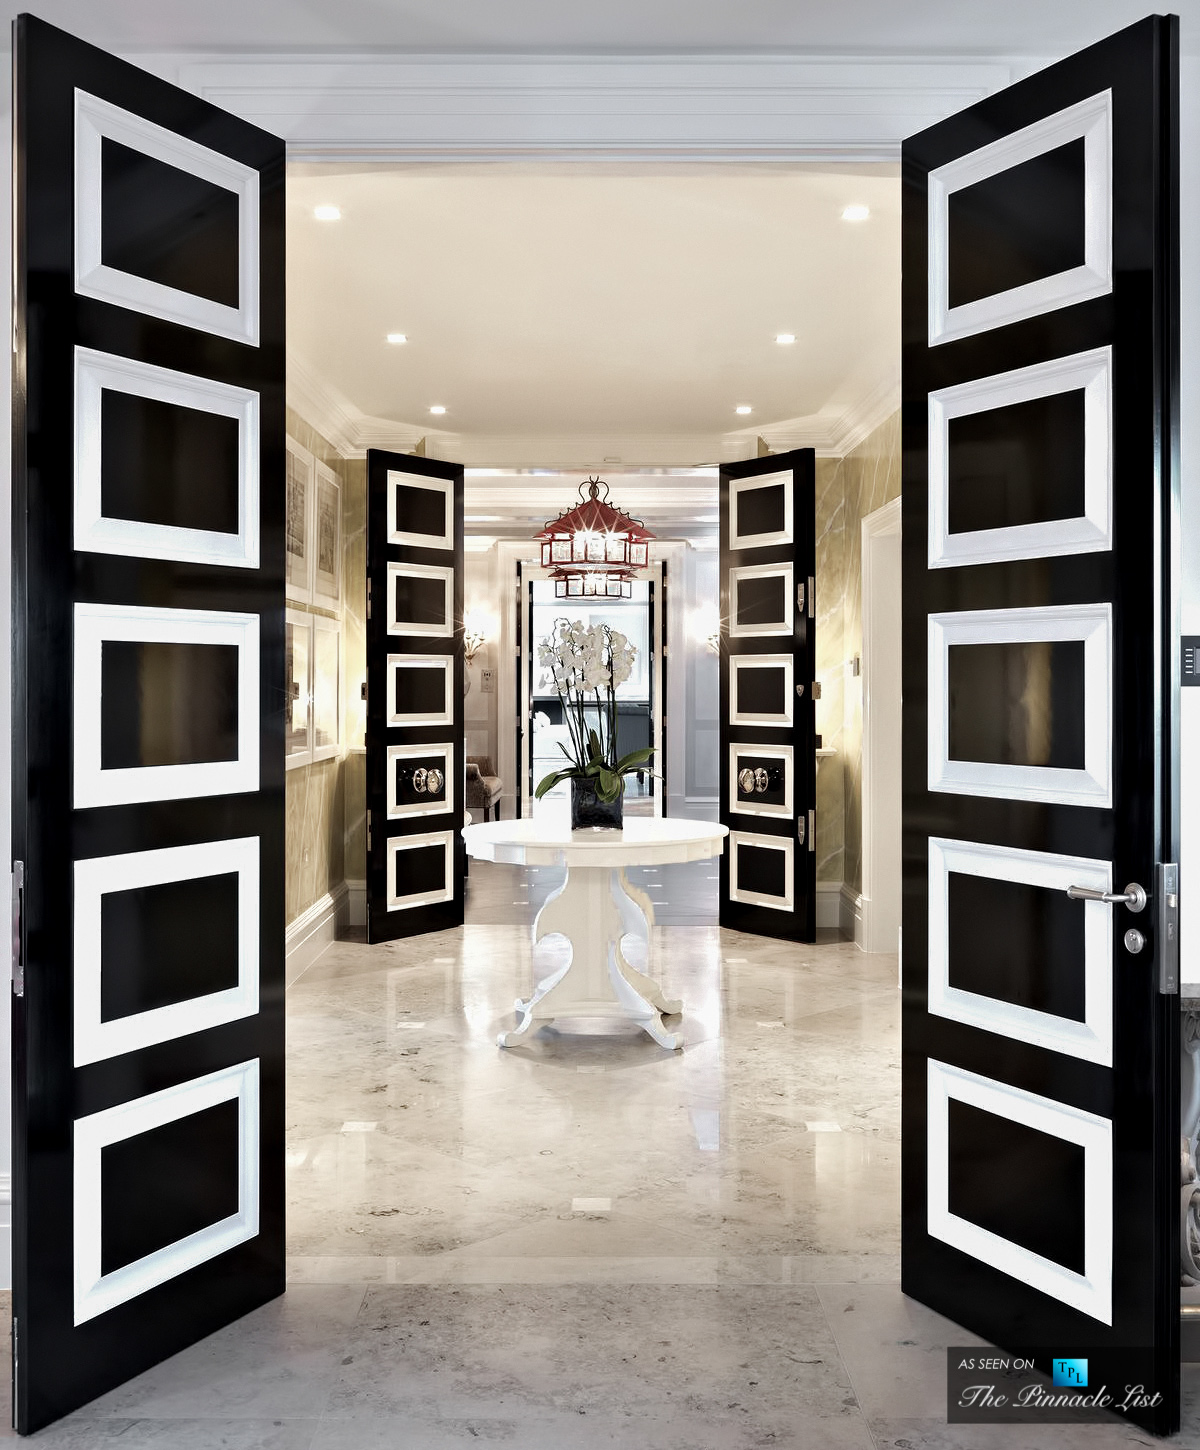 Paint your Interior Doors - Six Simple Ways to Turn a House into a Home with Luxurious Touches